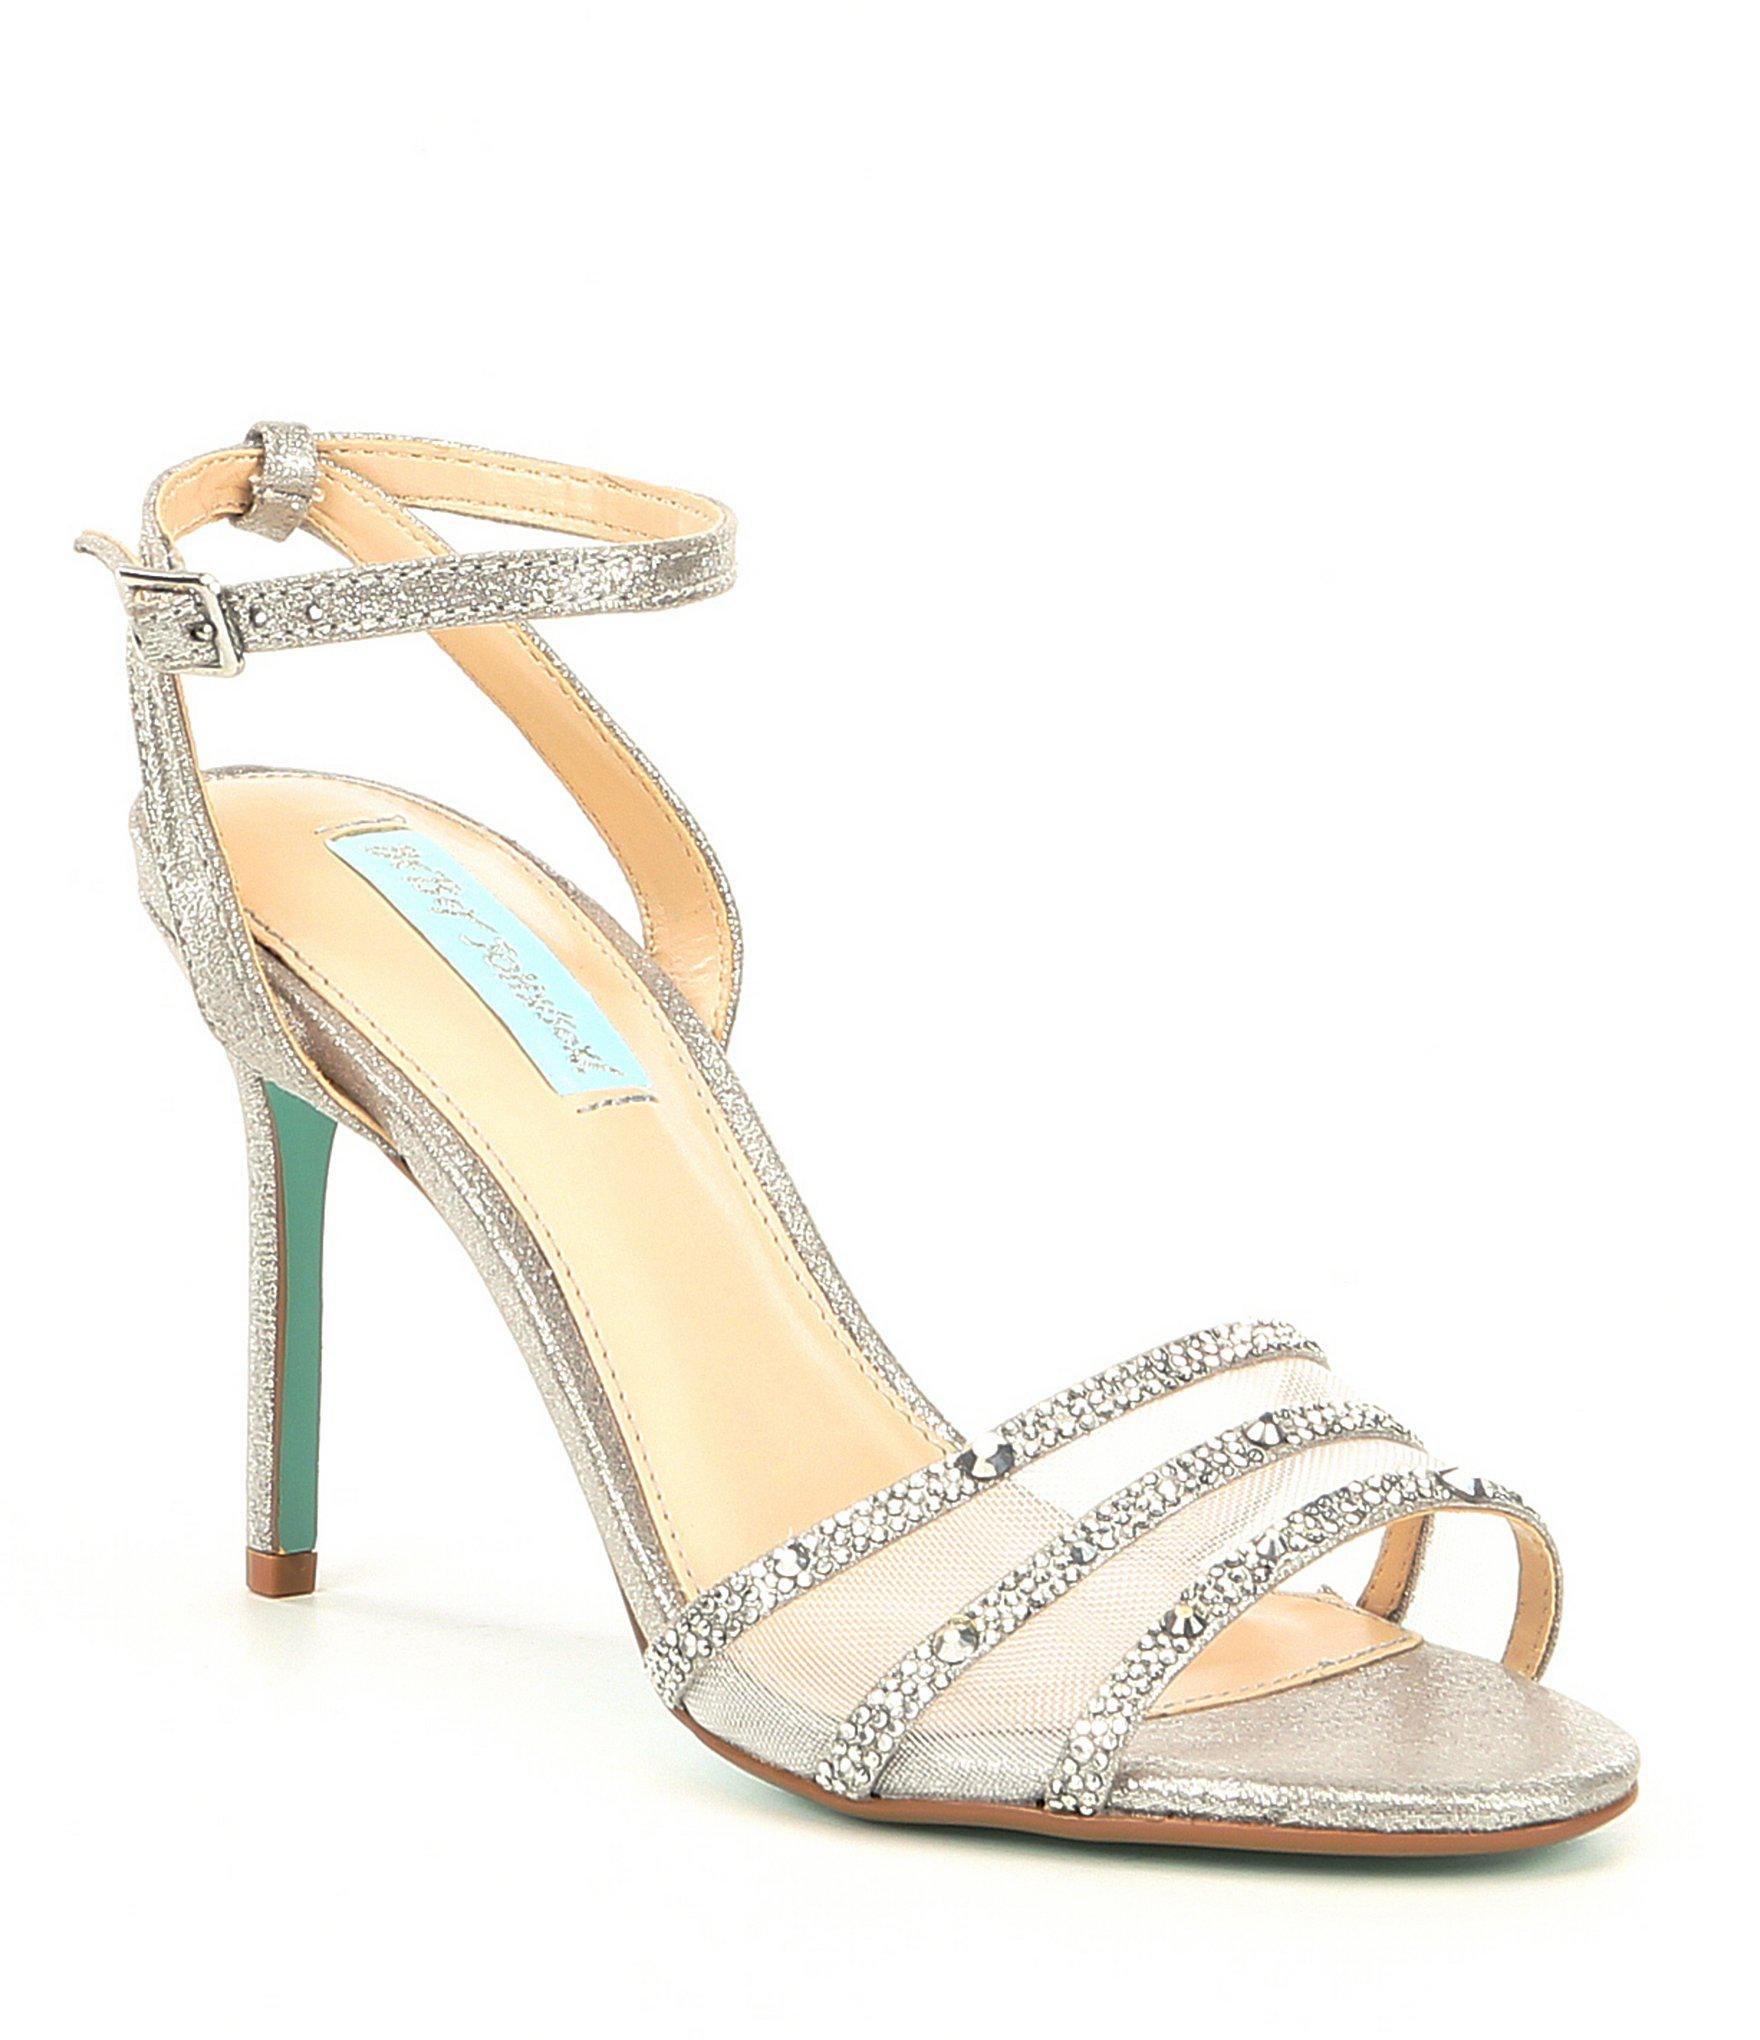 7c271f564dd Lyst - Betsey Johnson Blue By Veda Jeweled Mesh Dress Sandals in ...